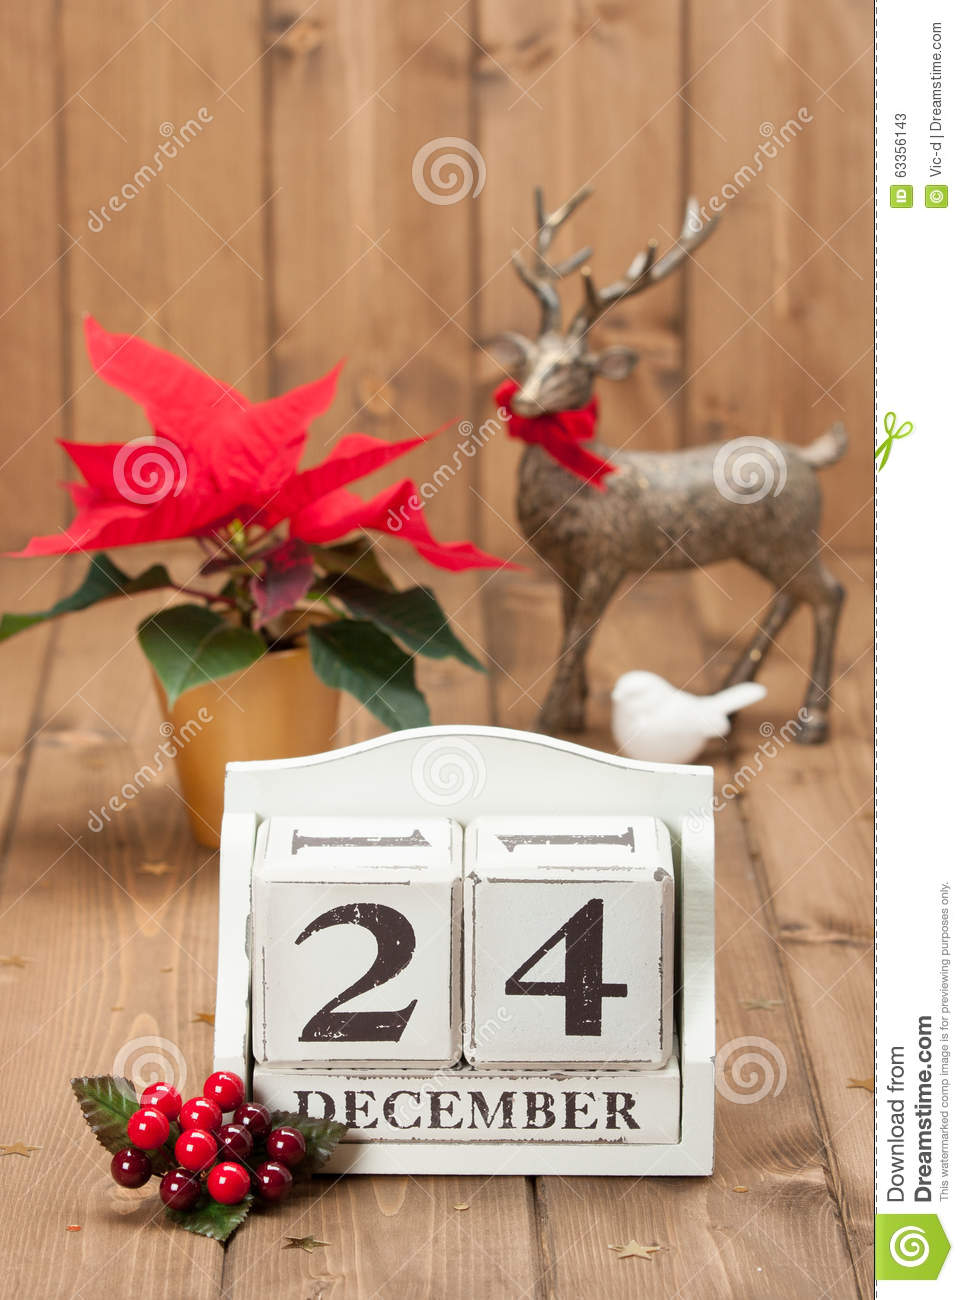 weihnachten eve date on calendar 24 dezember stockfoto. Black Bedroom Furniture Sets. Home Design Ideas